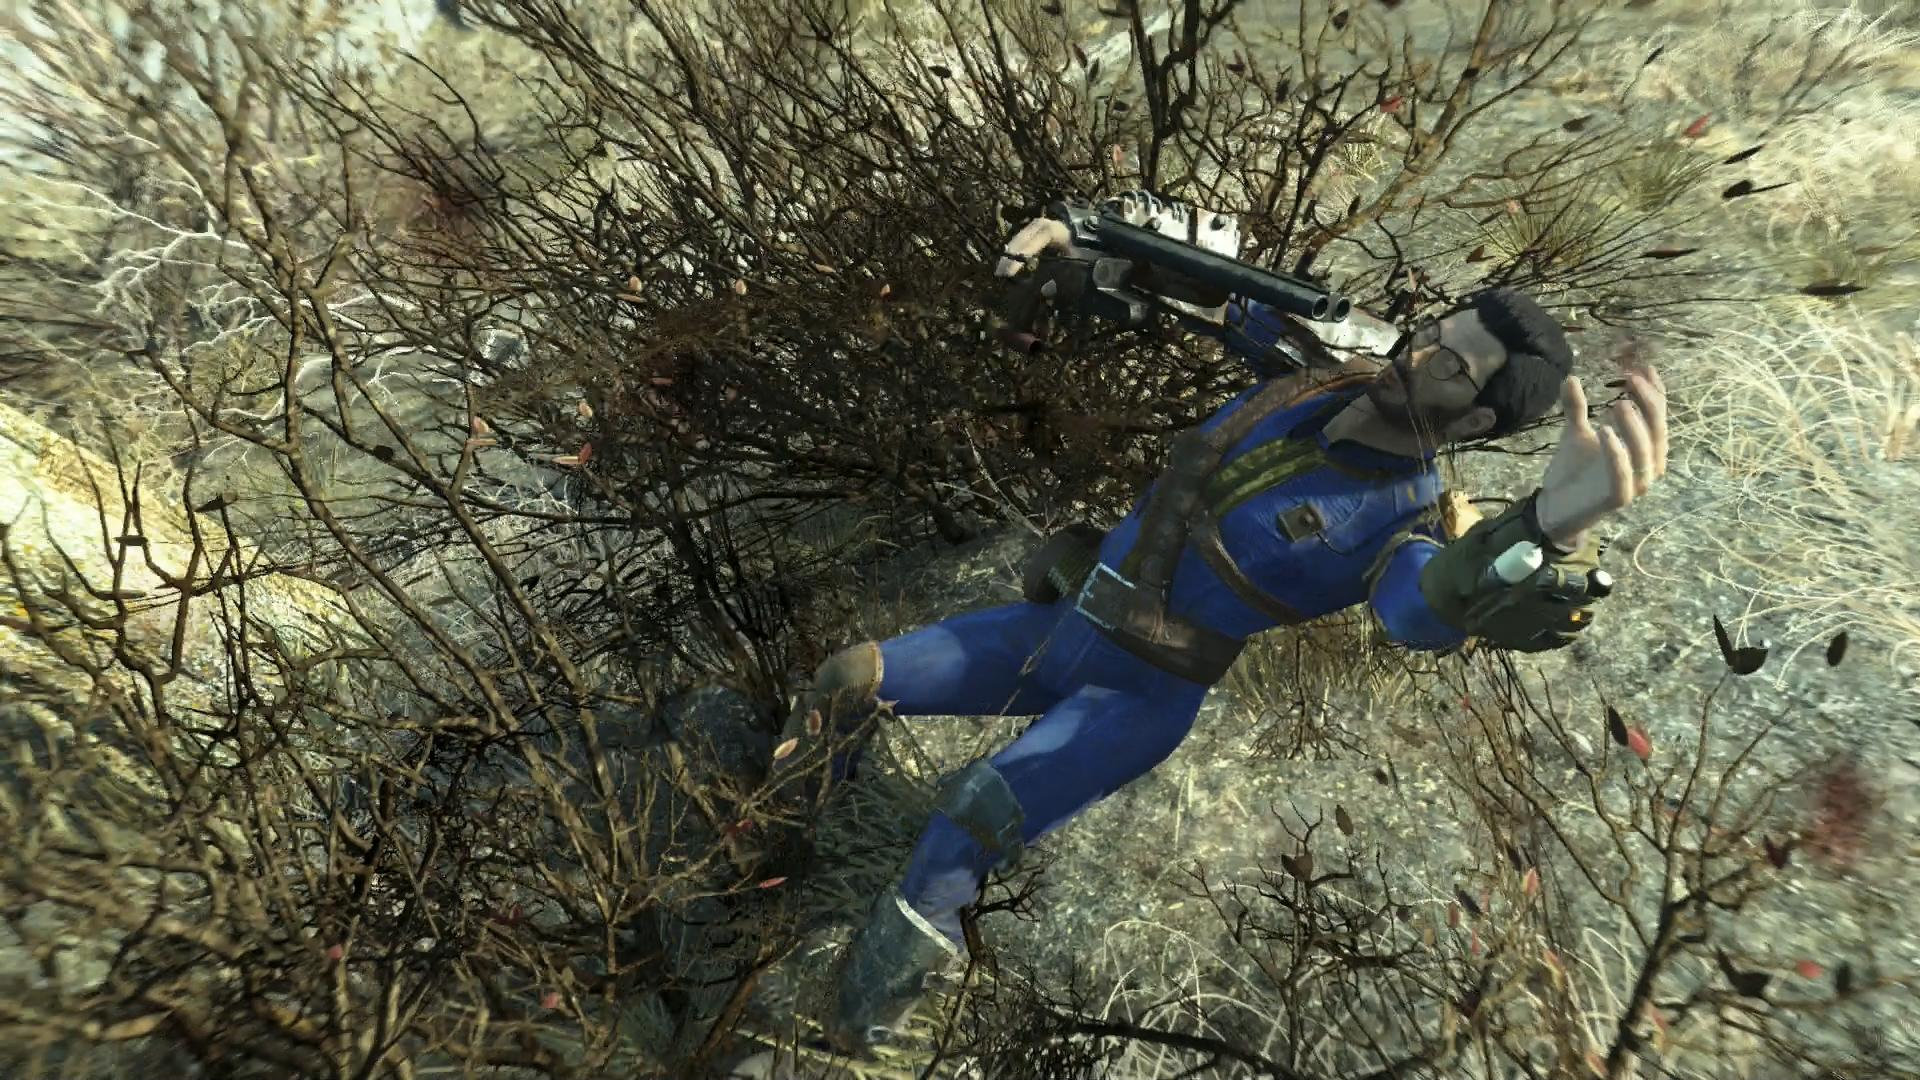 Fallout 4: Here Are The 7 Dumbest Ways To Die